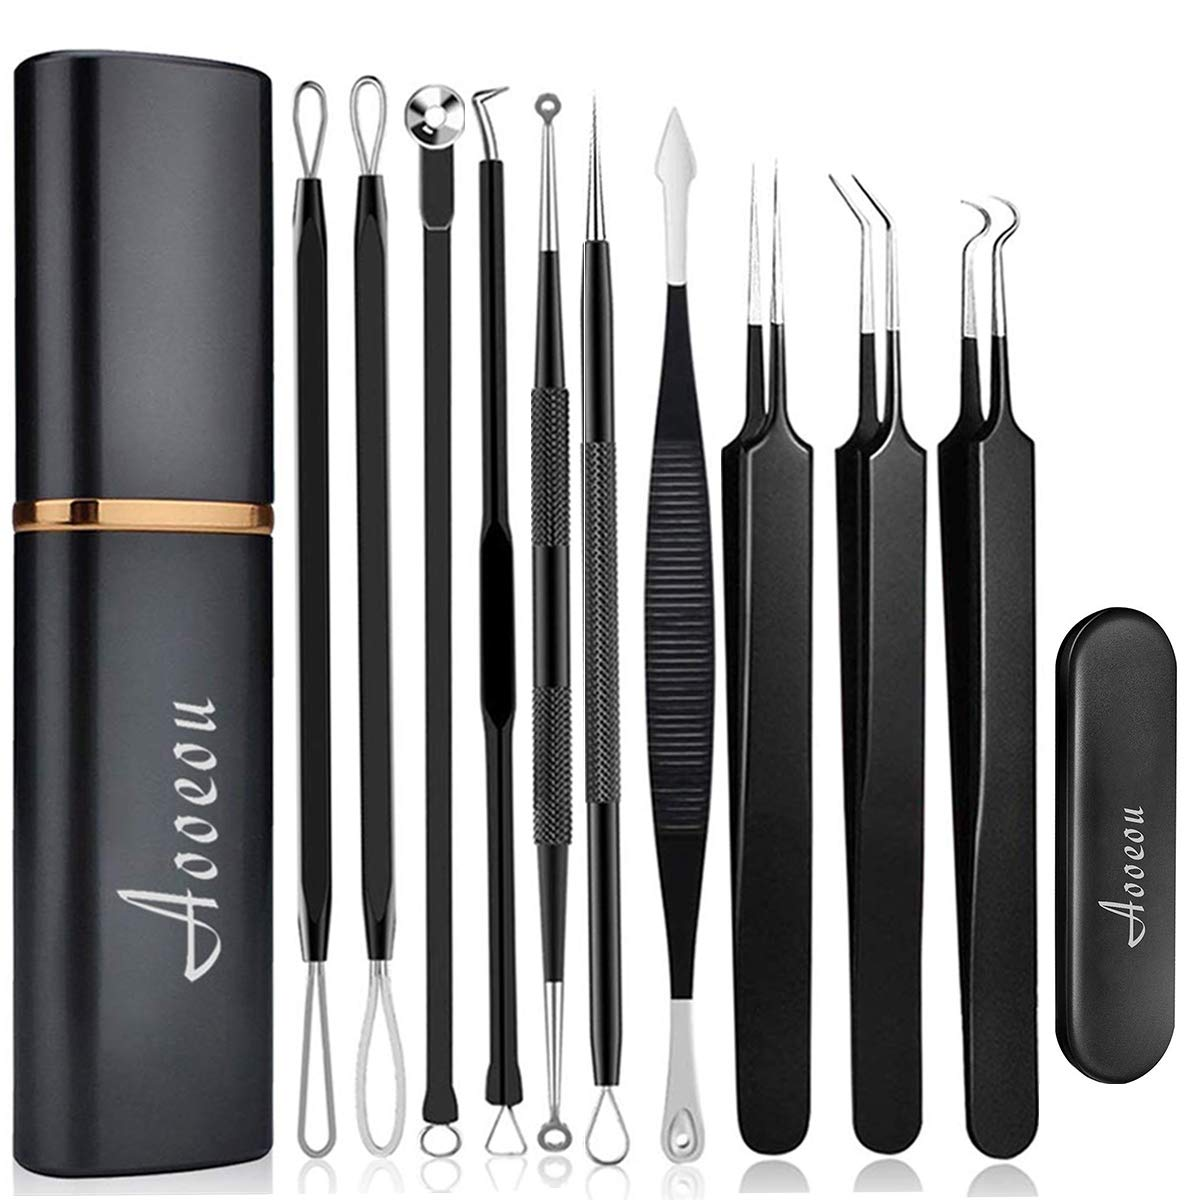 10pcs Pimple Popper Blackhead Remover Tool Ear Wax Removal Cuticle Pusher Stainless Steel Comedone Zit Blemish Acne Kit with Brush Leather Bag